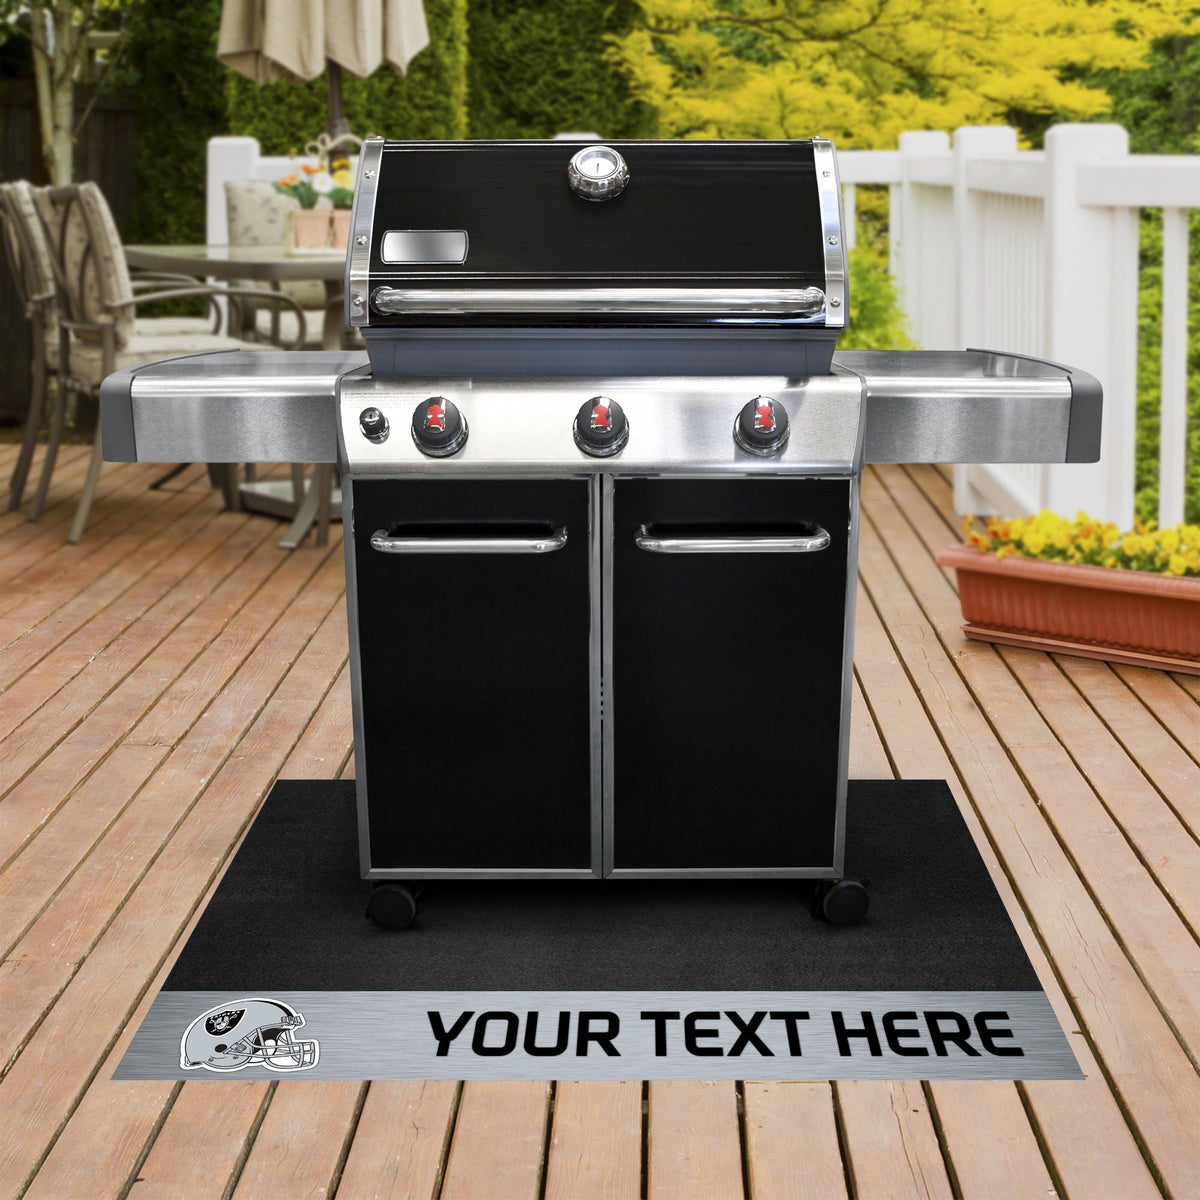 NFL Personalized Grill Mat Personalized Grill Mat Fan Mats Oakland Raiders